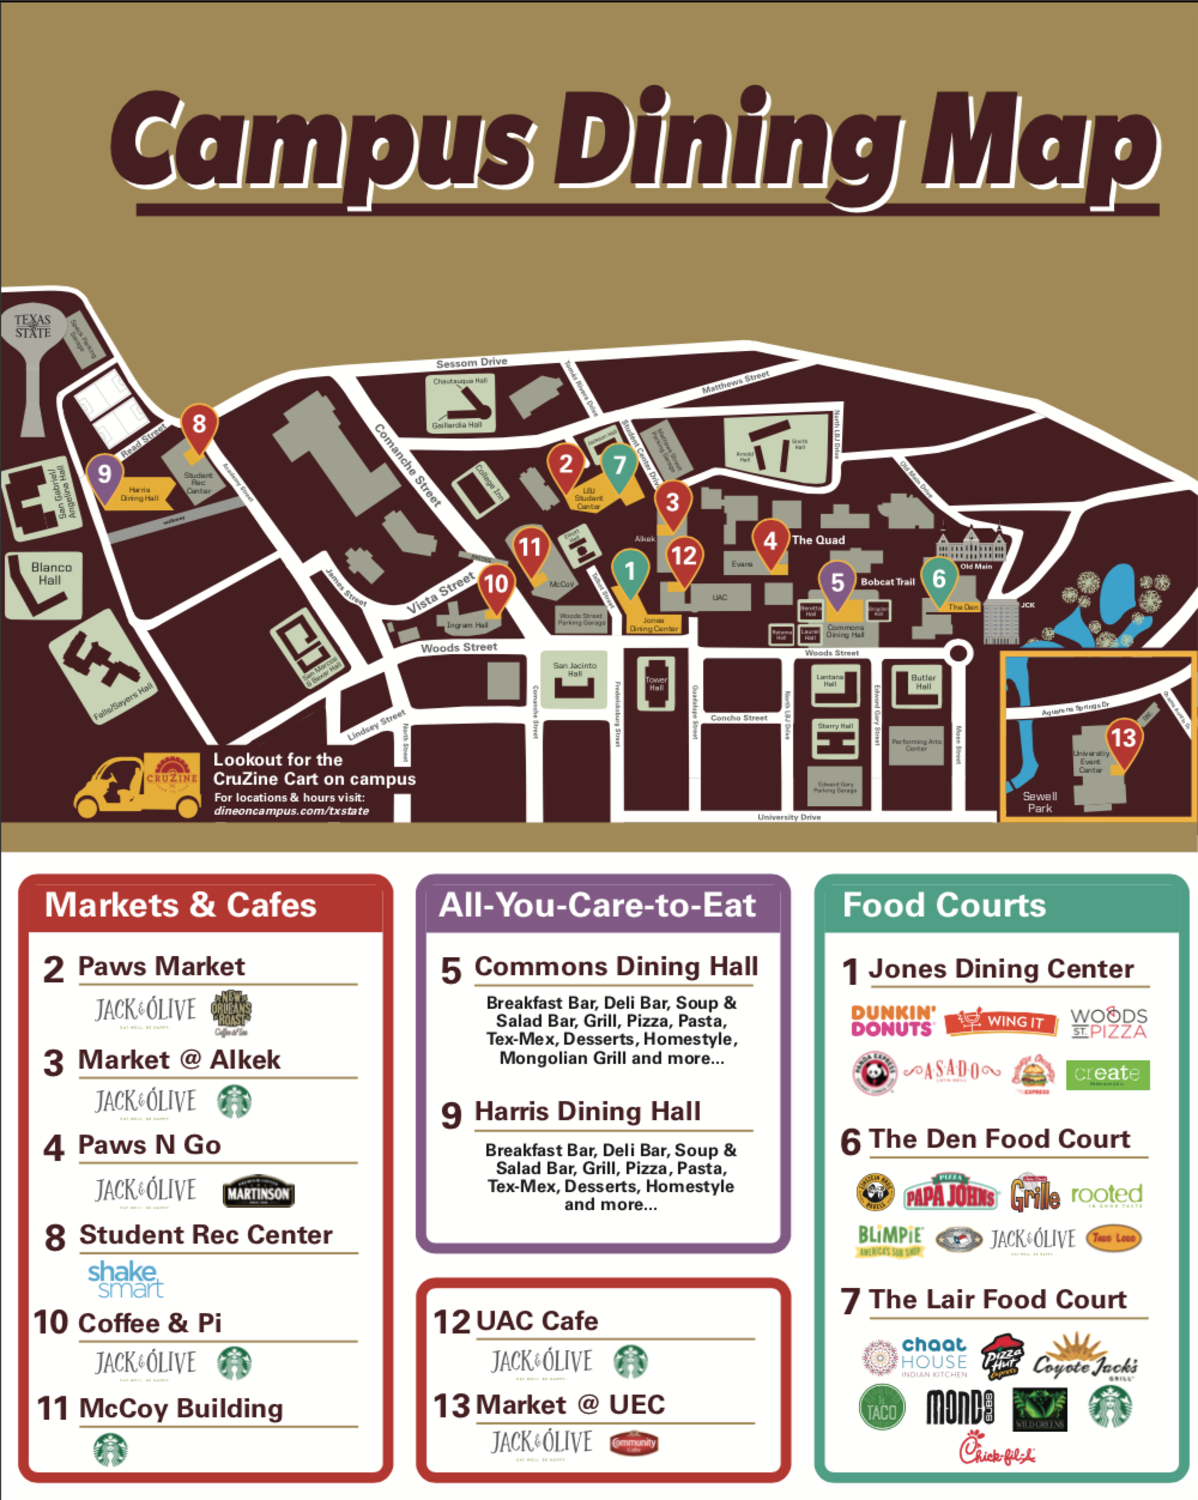 Dine On Campus at Texas State University || Hours & Locations Dunkin Donuts Store Locator Map on macy's store locator, cinnabon store locator, disney store locator, subway store locator, kfc store locator, carvel store locator, fatburger store locator, bob evans store locator, stuckey's store locator, kroger store locator, donatos store locator, sunbeam bread store locator, chili's store locator, michaels store locator, victoria's secret store locator, wendy's store locator, home depot store locator, sprint store locator, wonka store locator, sonic store locator,